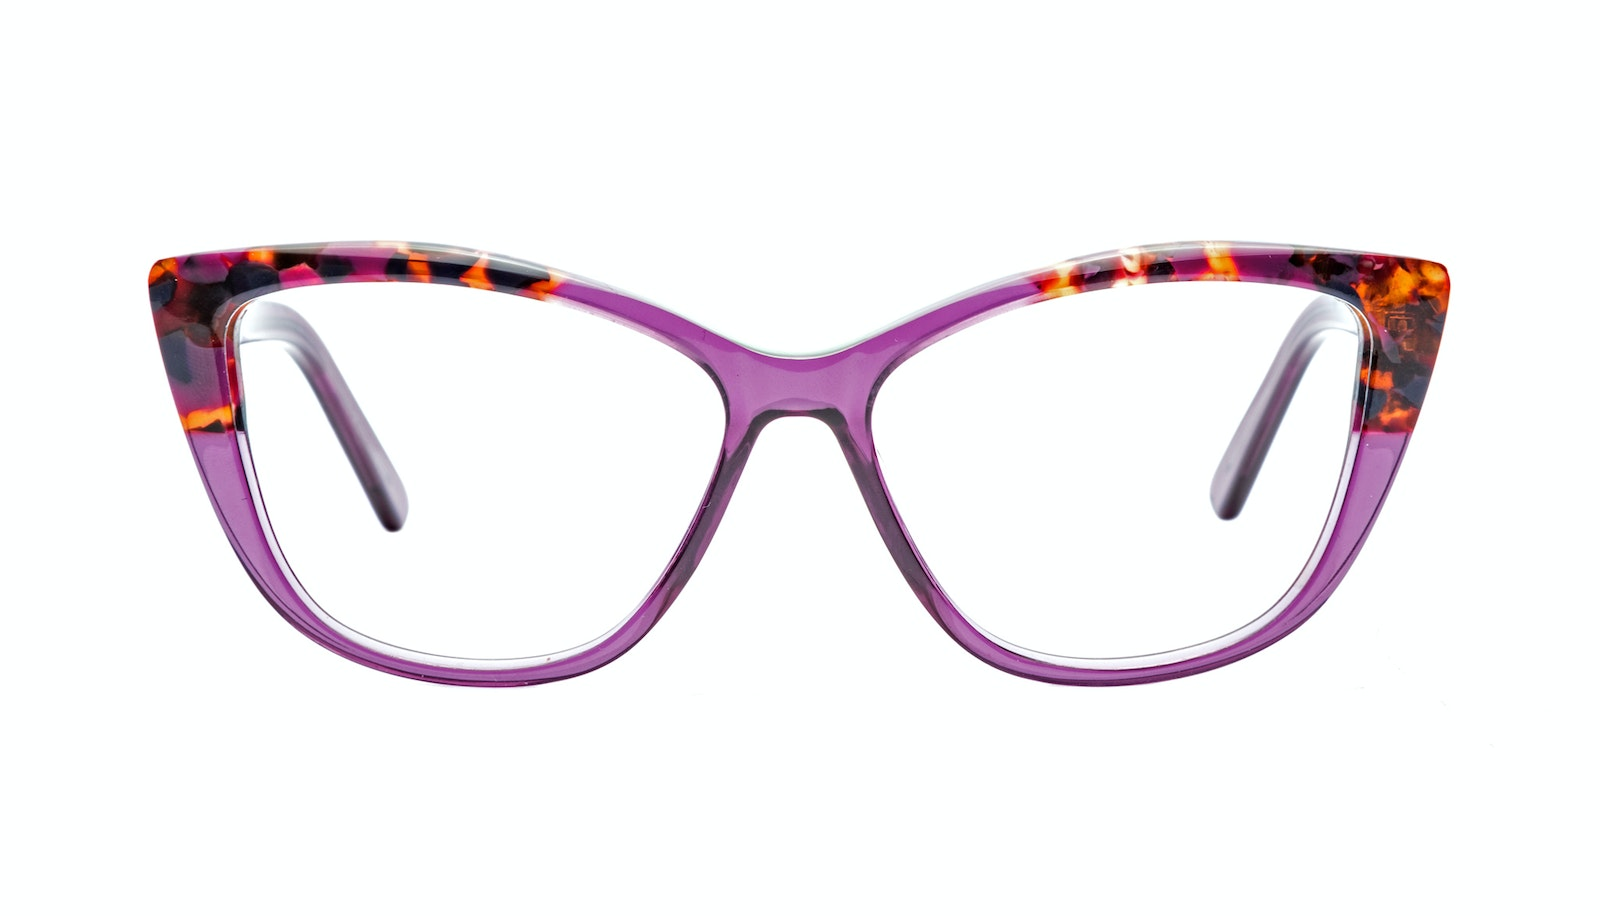 Affordable Fashion Glasses Cat Eye Daring Cateye Eyeglasses Women Dolled Up Pretty Purple